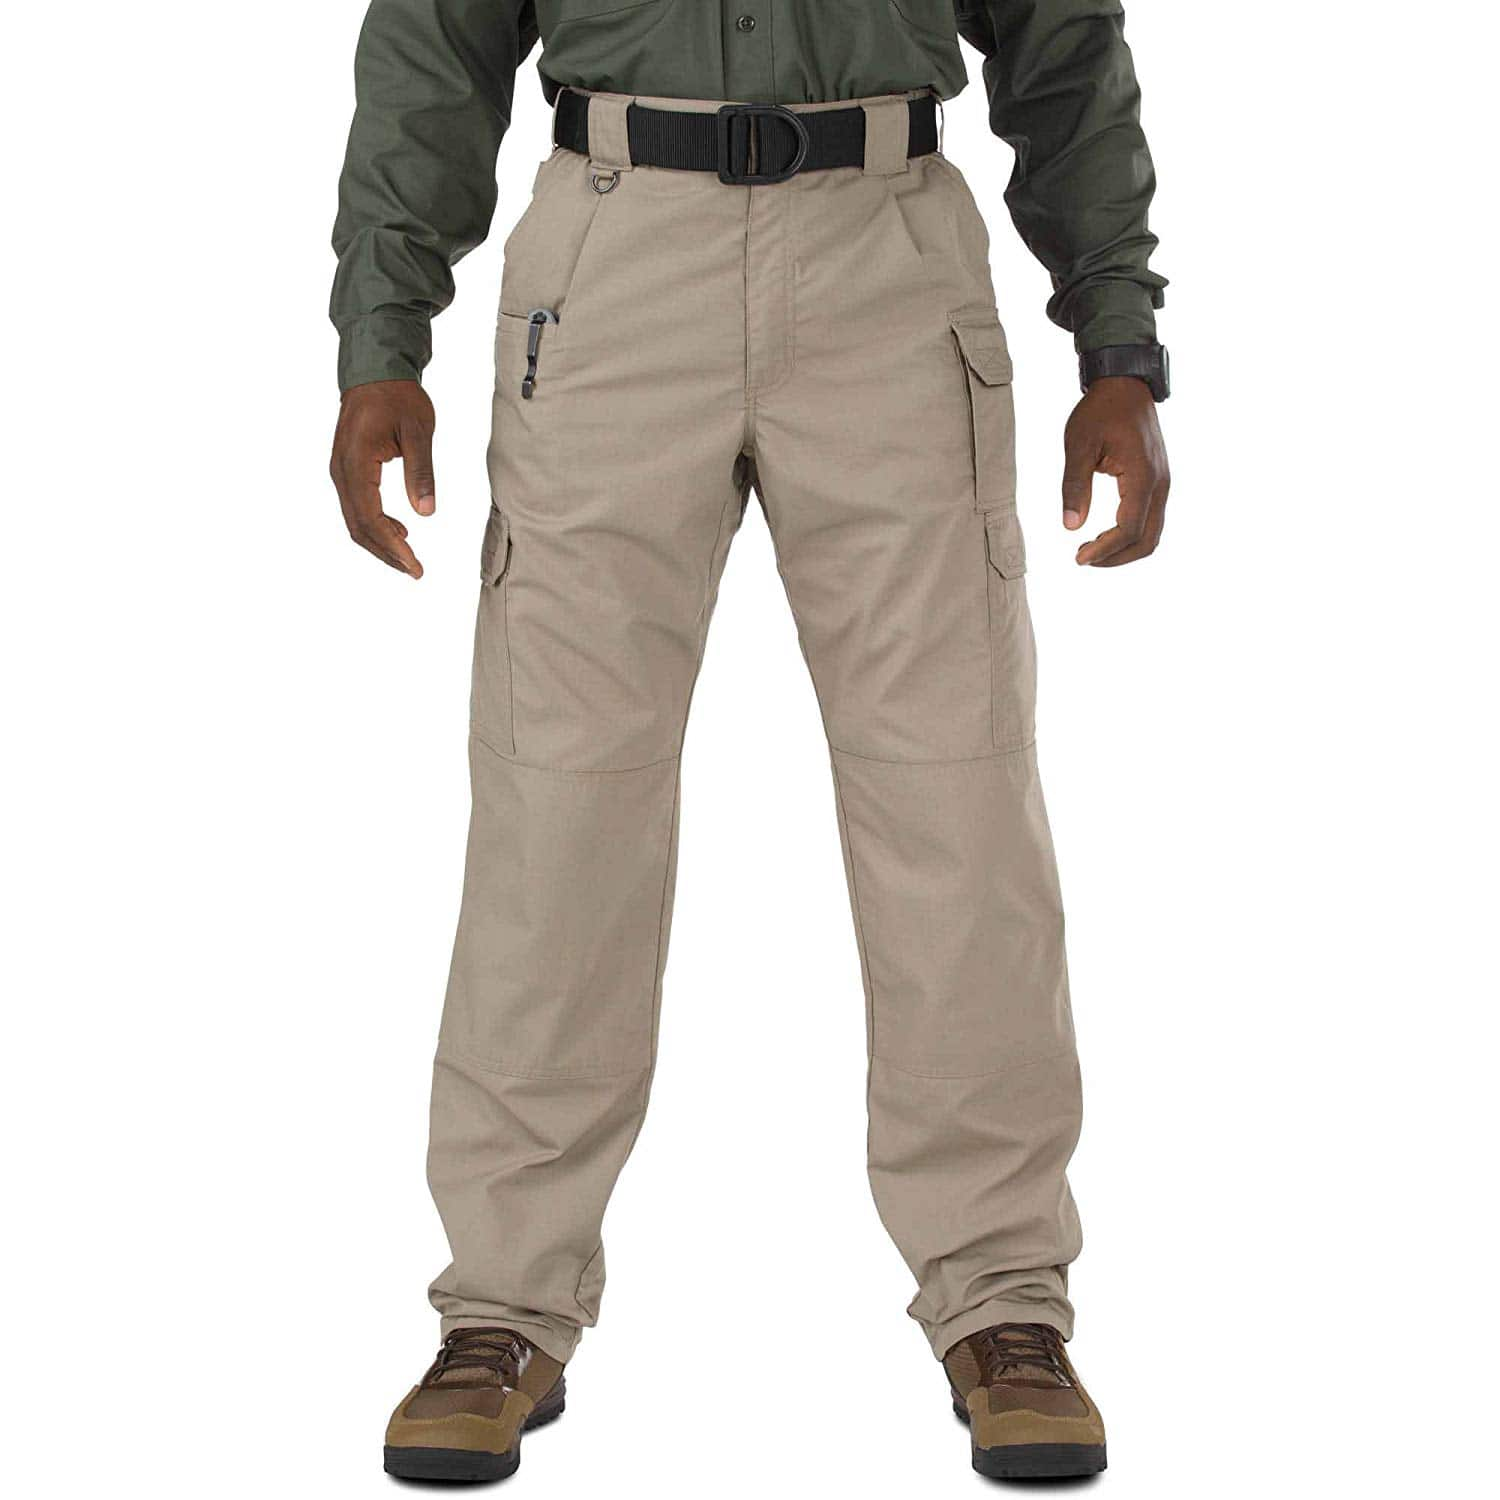 5.11 Tactical Men's Taclite Pro Lightweight Performance Pants, Cargo Pockets, Action Waistband, Style 74297 on Amazon $23.8